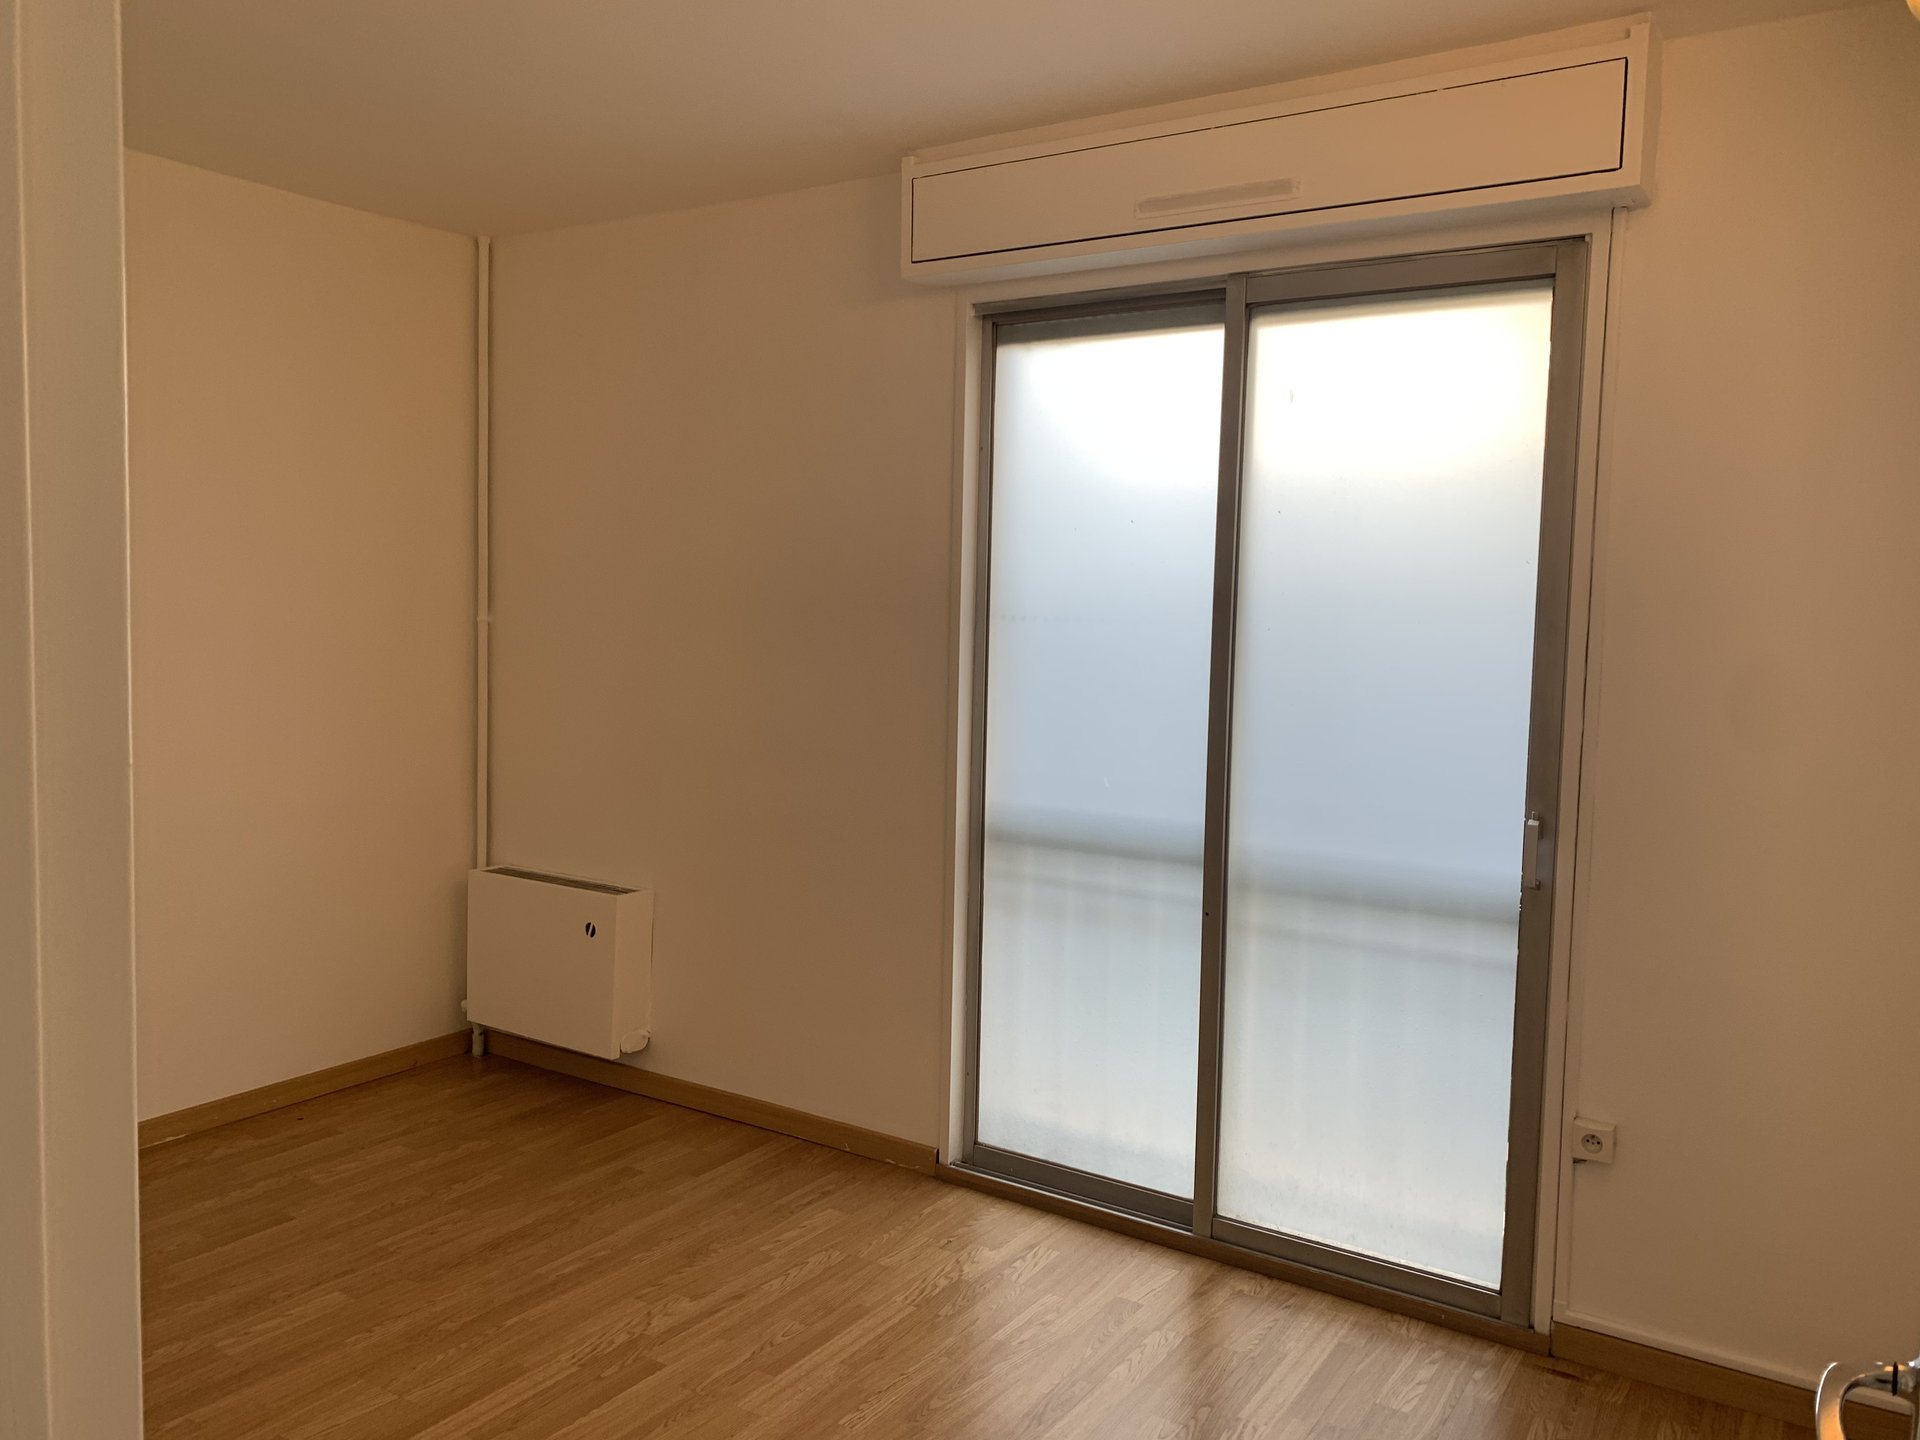 LOCATION PURE-BUREAU-57M2-NICE NORD